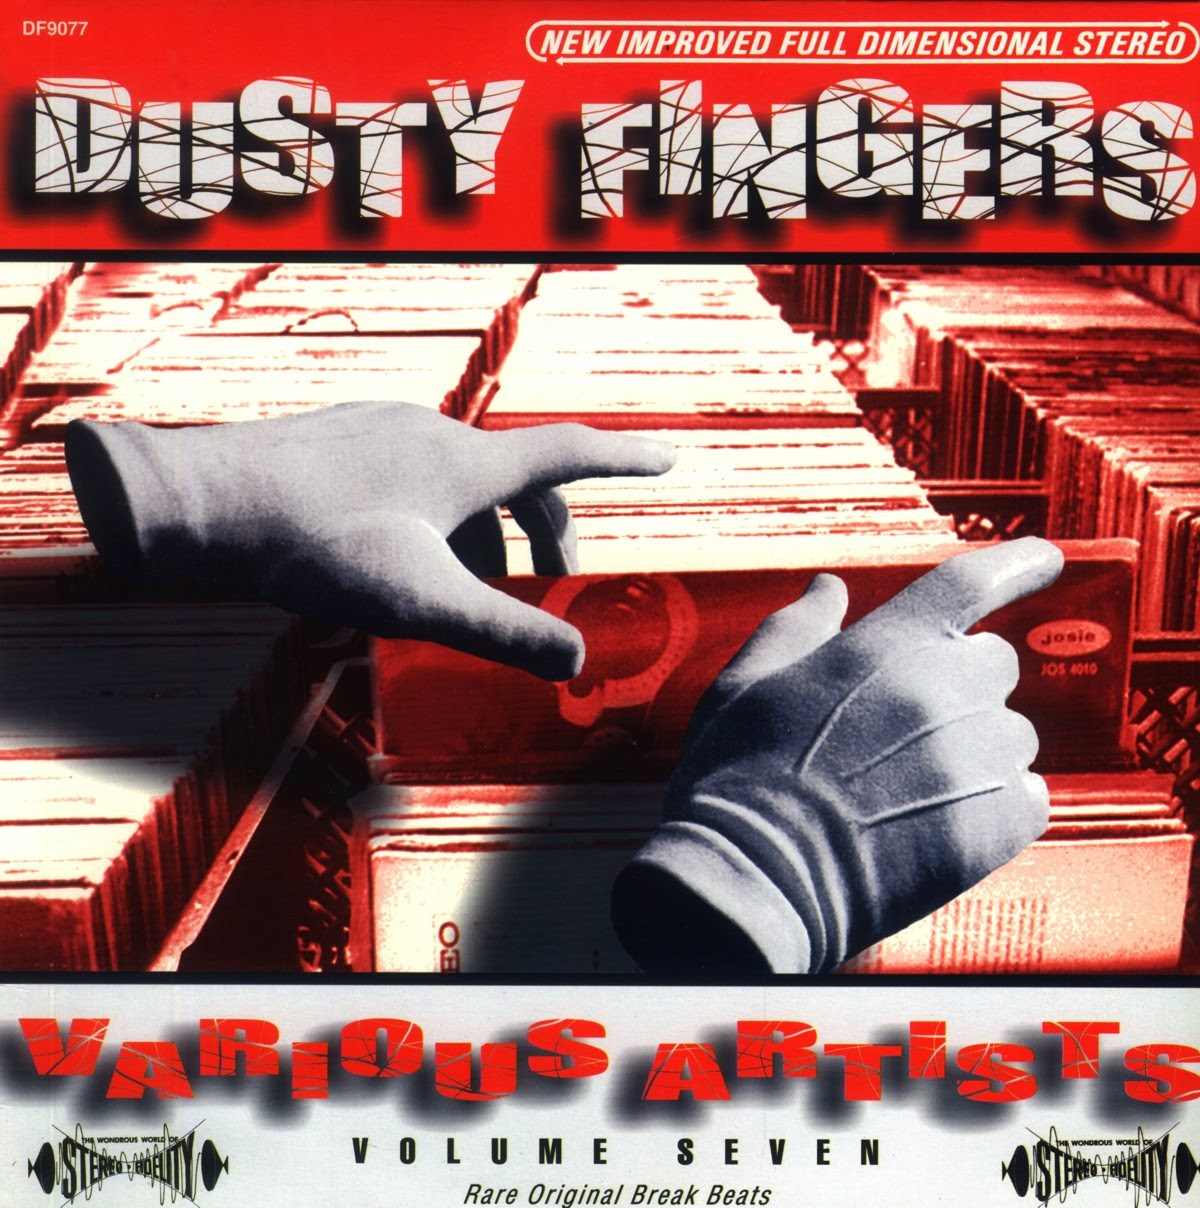 dusty fingers vol 7